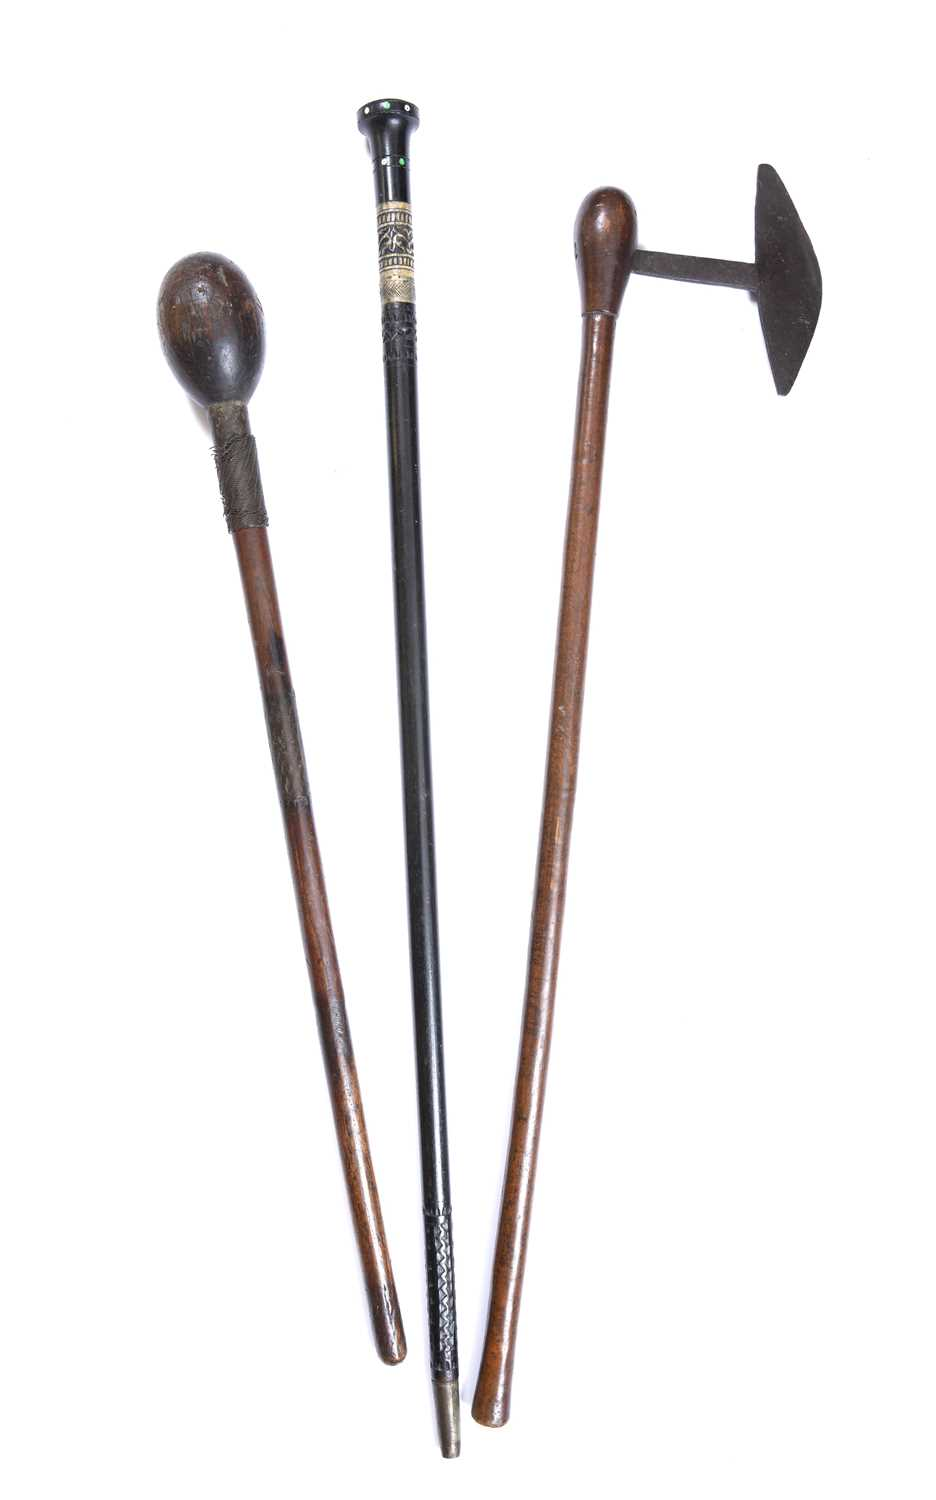 A South African Zulu knobkerrie, carved wood with metal wire grips together with an axe and a - Image 2 of 3